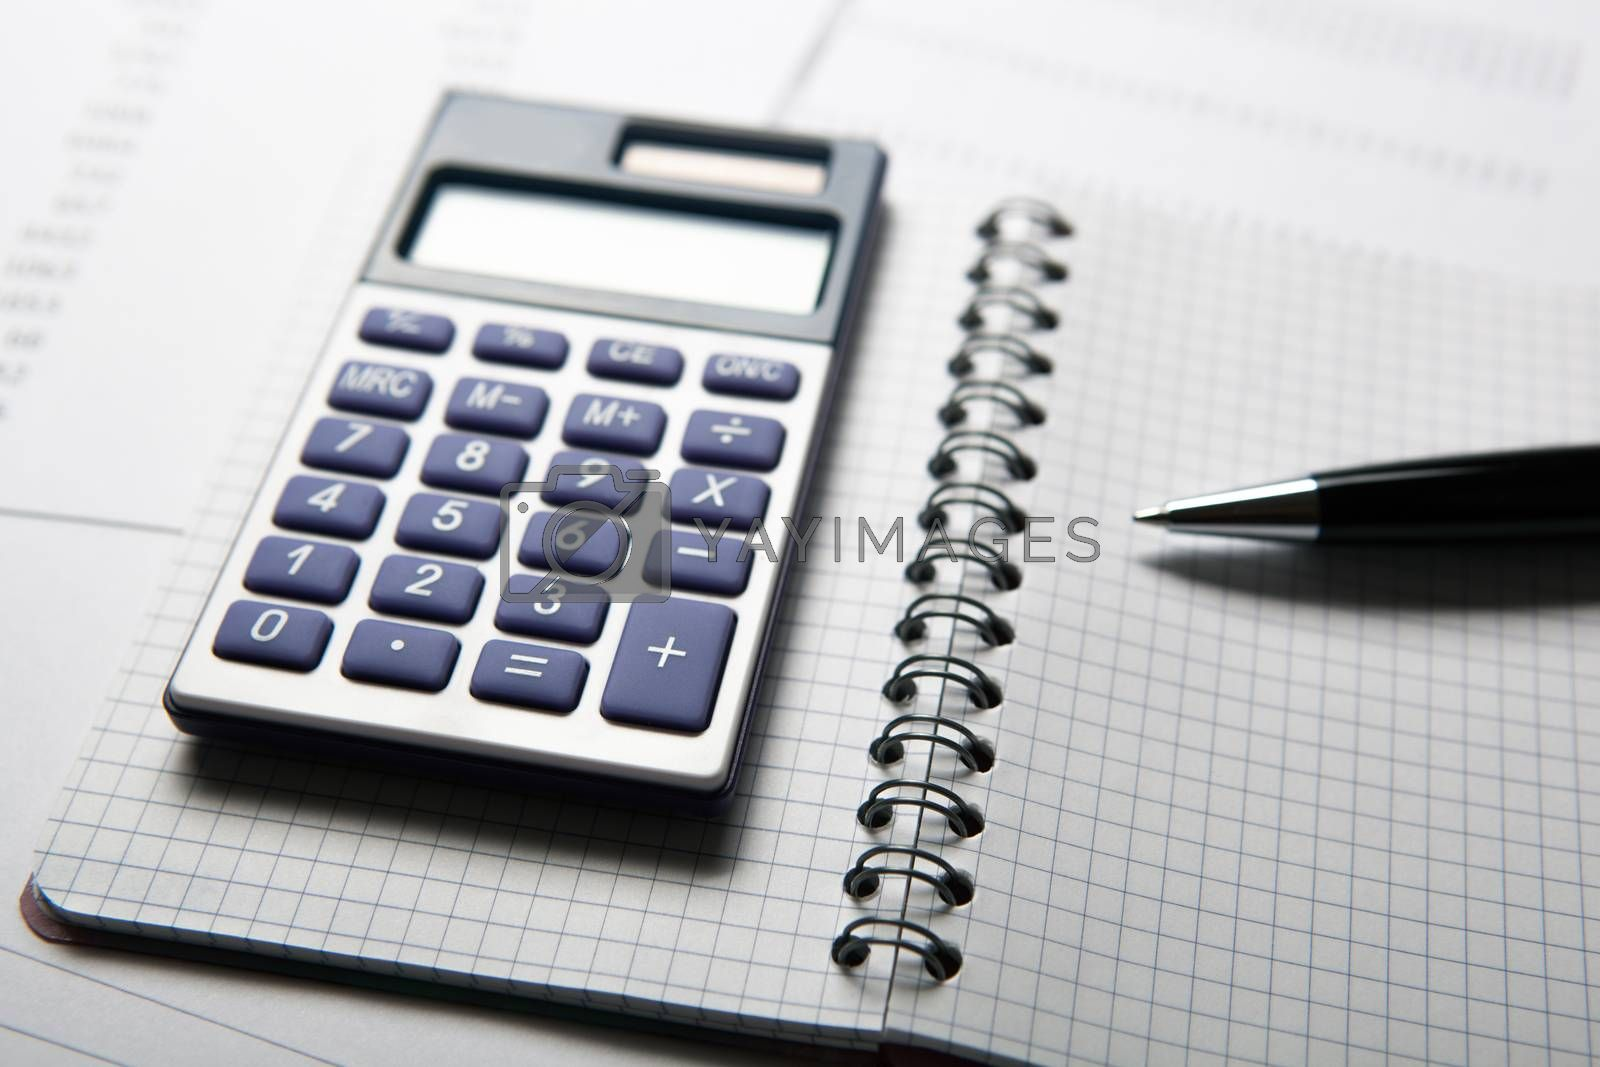 Royalty free image of work on the calculator and papers by mizar_21984